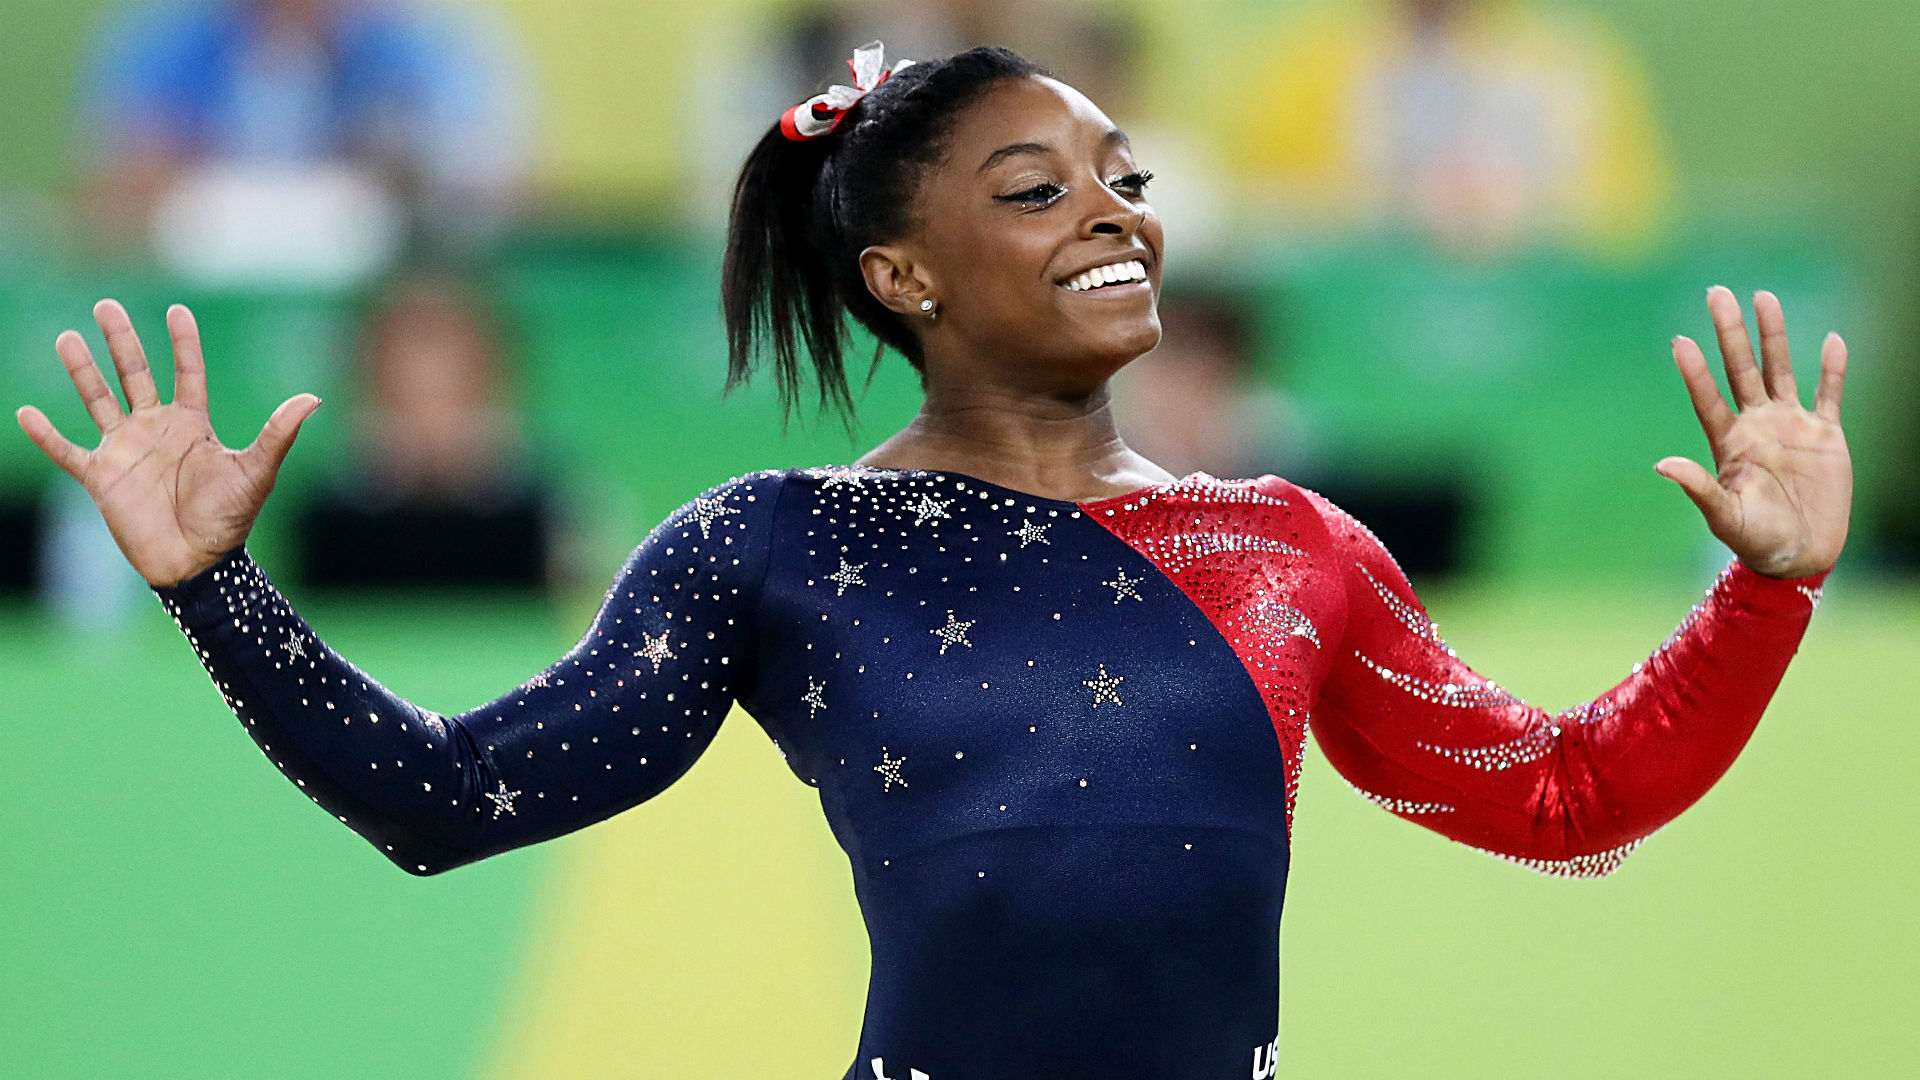 Simone Biles, US women gymnasts could be best of all time